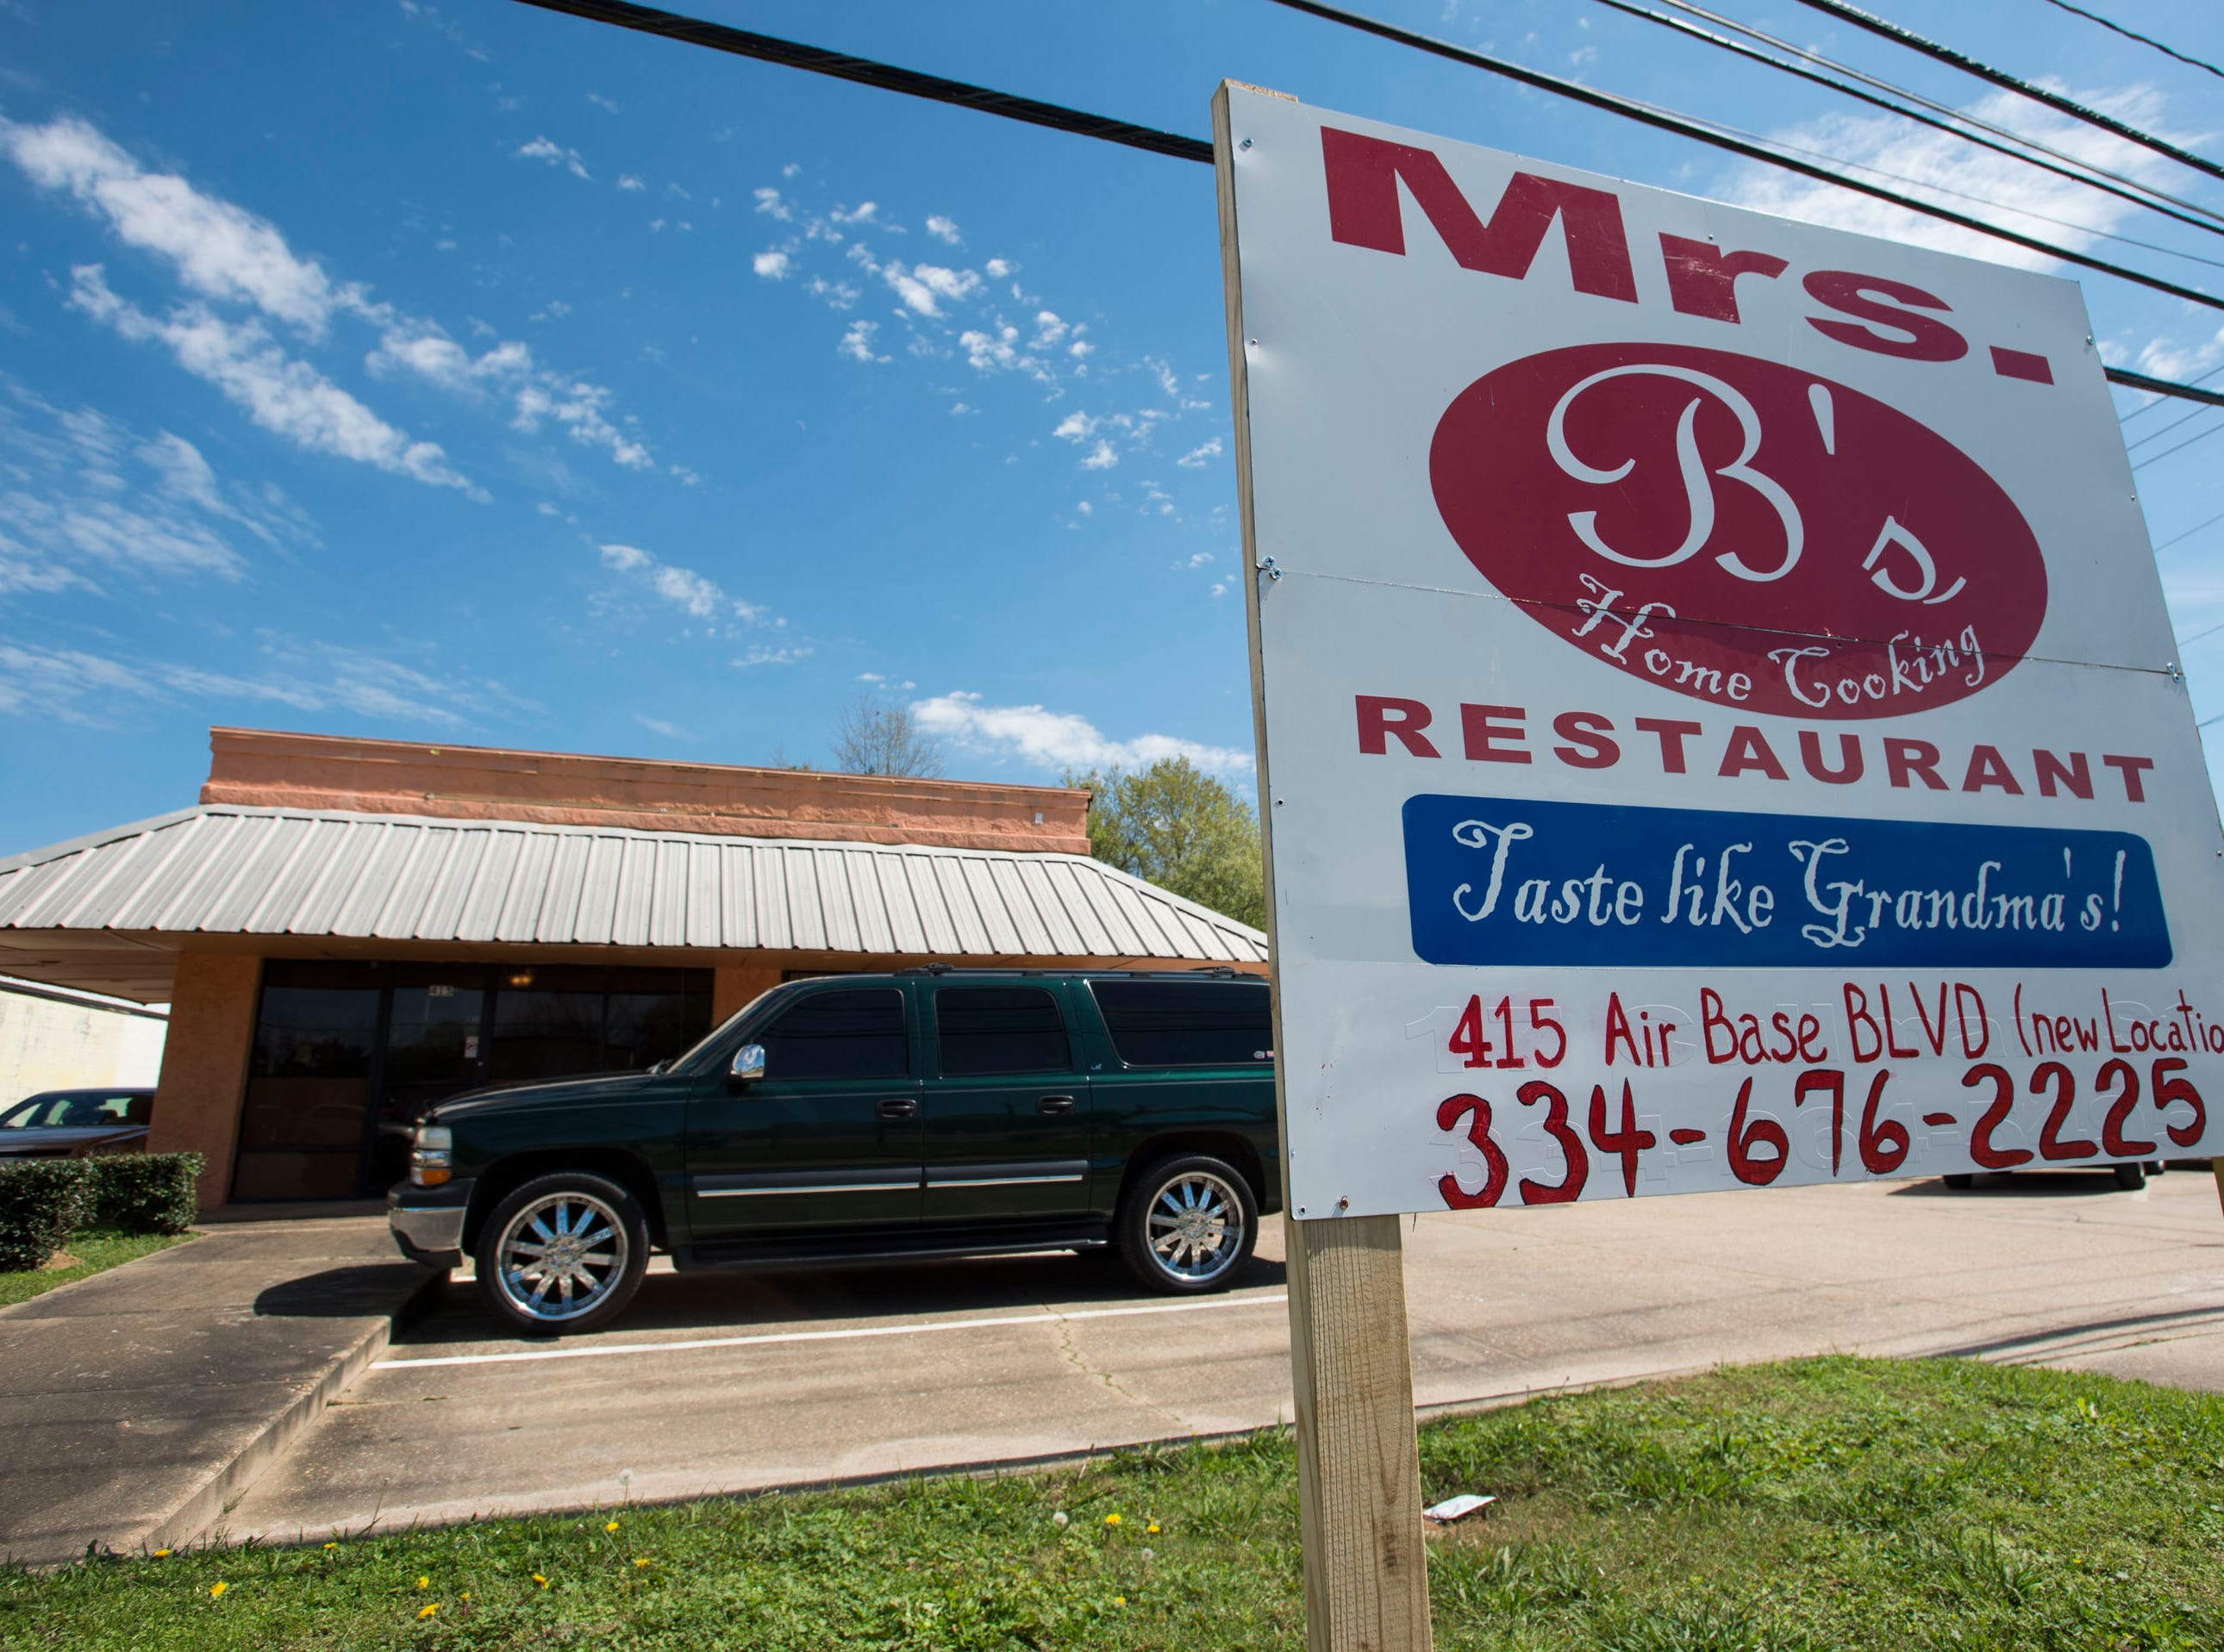 Mrs. B's restaurant new location at 415 Air Base Blvd. in Montgomery, Ala., on Tuesday, March 12, 2019. The iconic home cooking restaurant's original location burned down in a Jan. 20th fire.